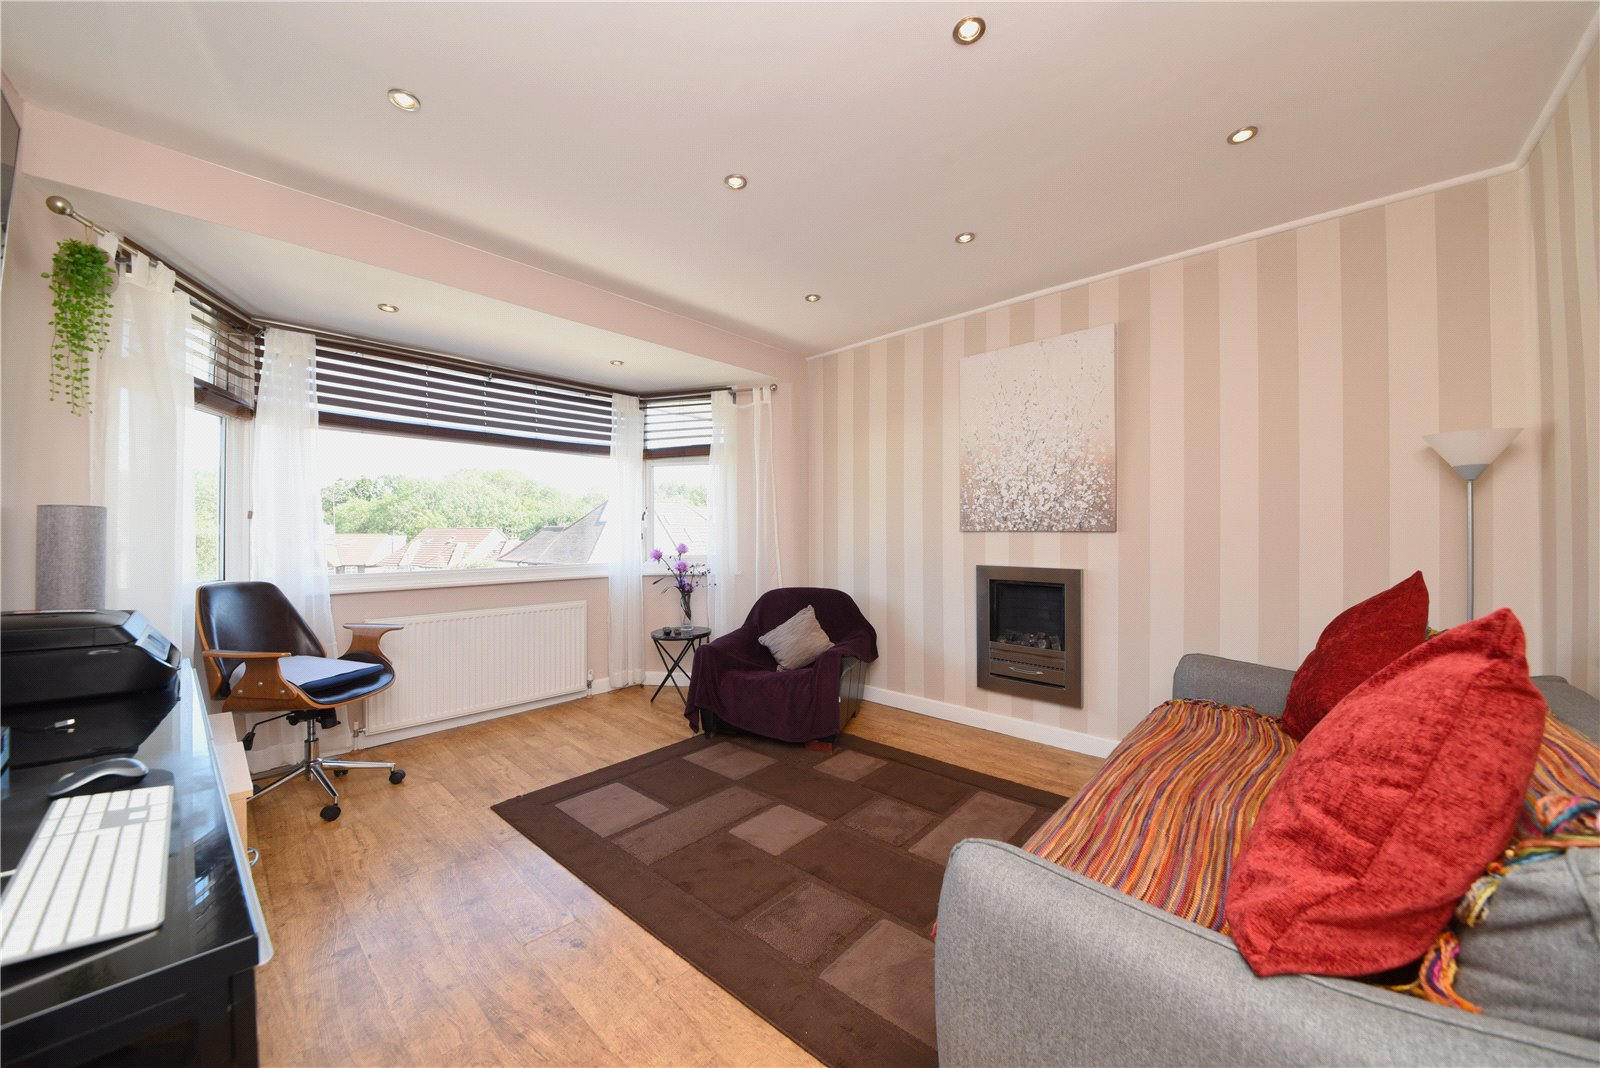 1 bed apartment for sale in Hendon, NW4 1NJ 0